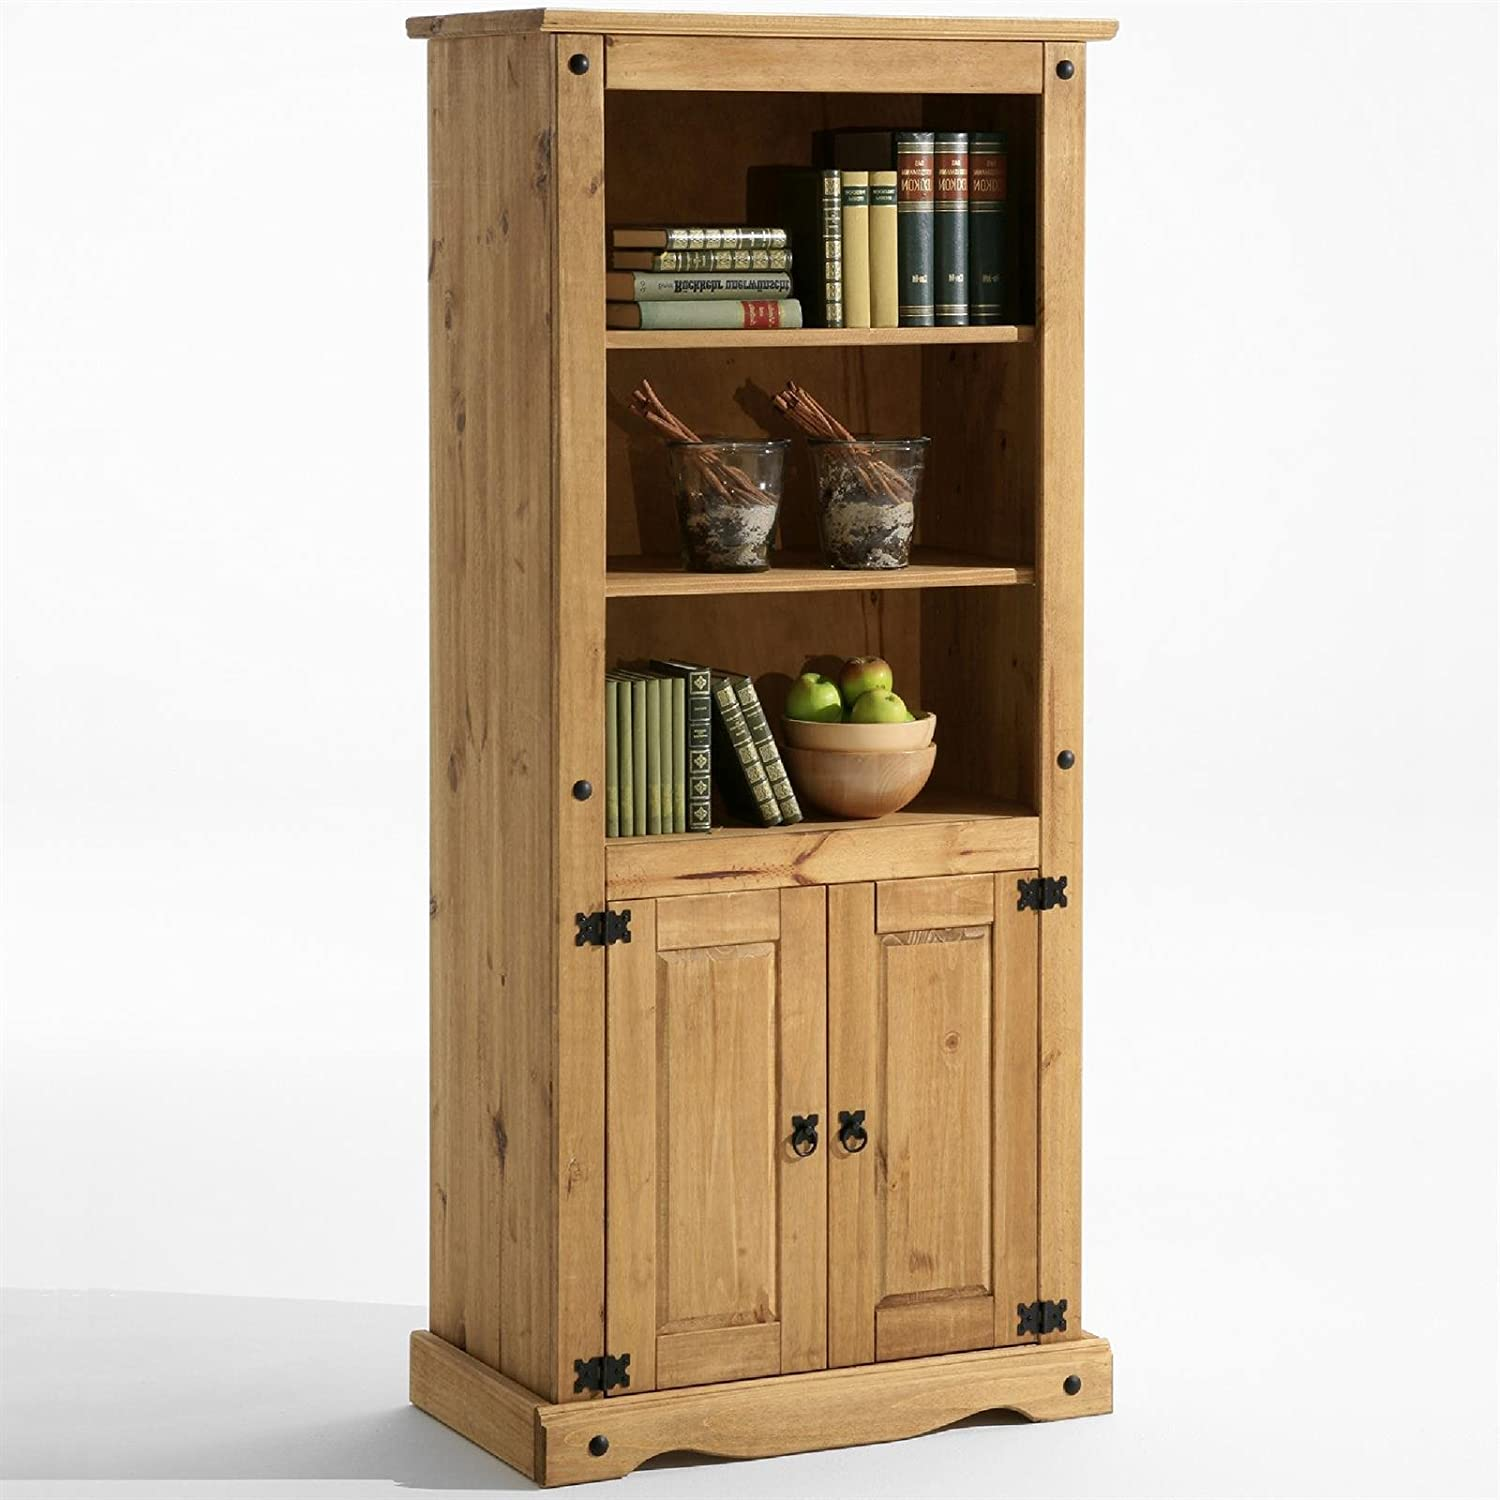 Groovy Mews Corona Pine Shelves And Cabinet Living Dining Room Display Unit Home Interior And Landscaping Ferensignezvosmurscom